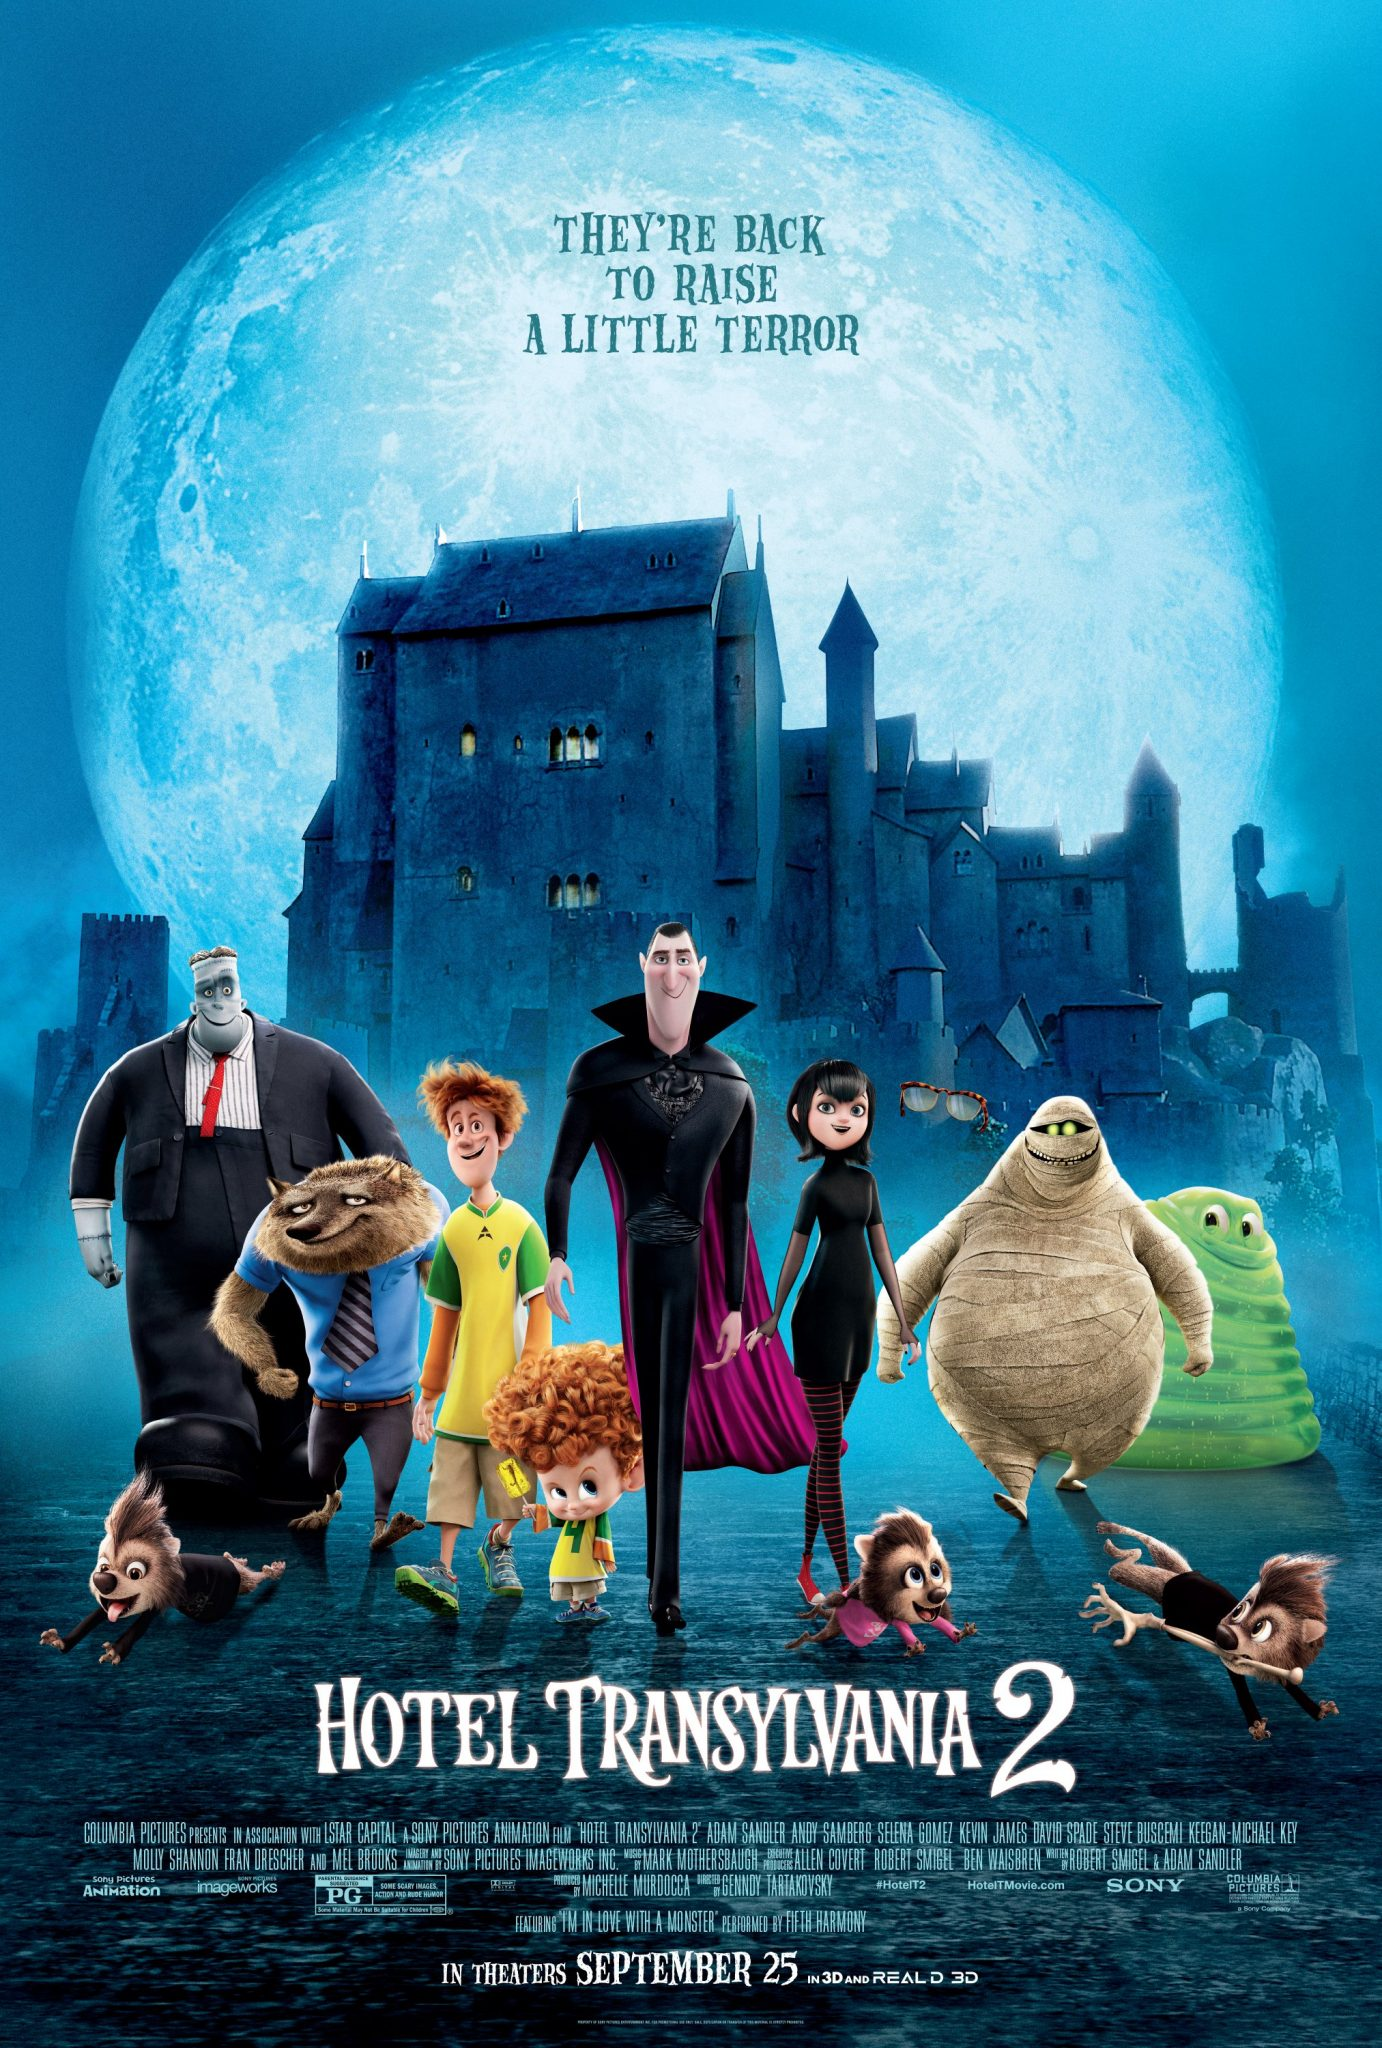 Sneak Peek: Hotel Transylvania 2 #HotelT2 | Mommy Runs It